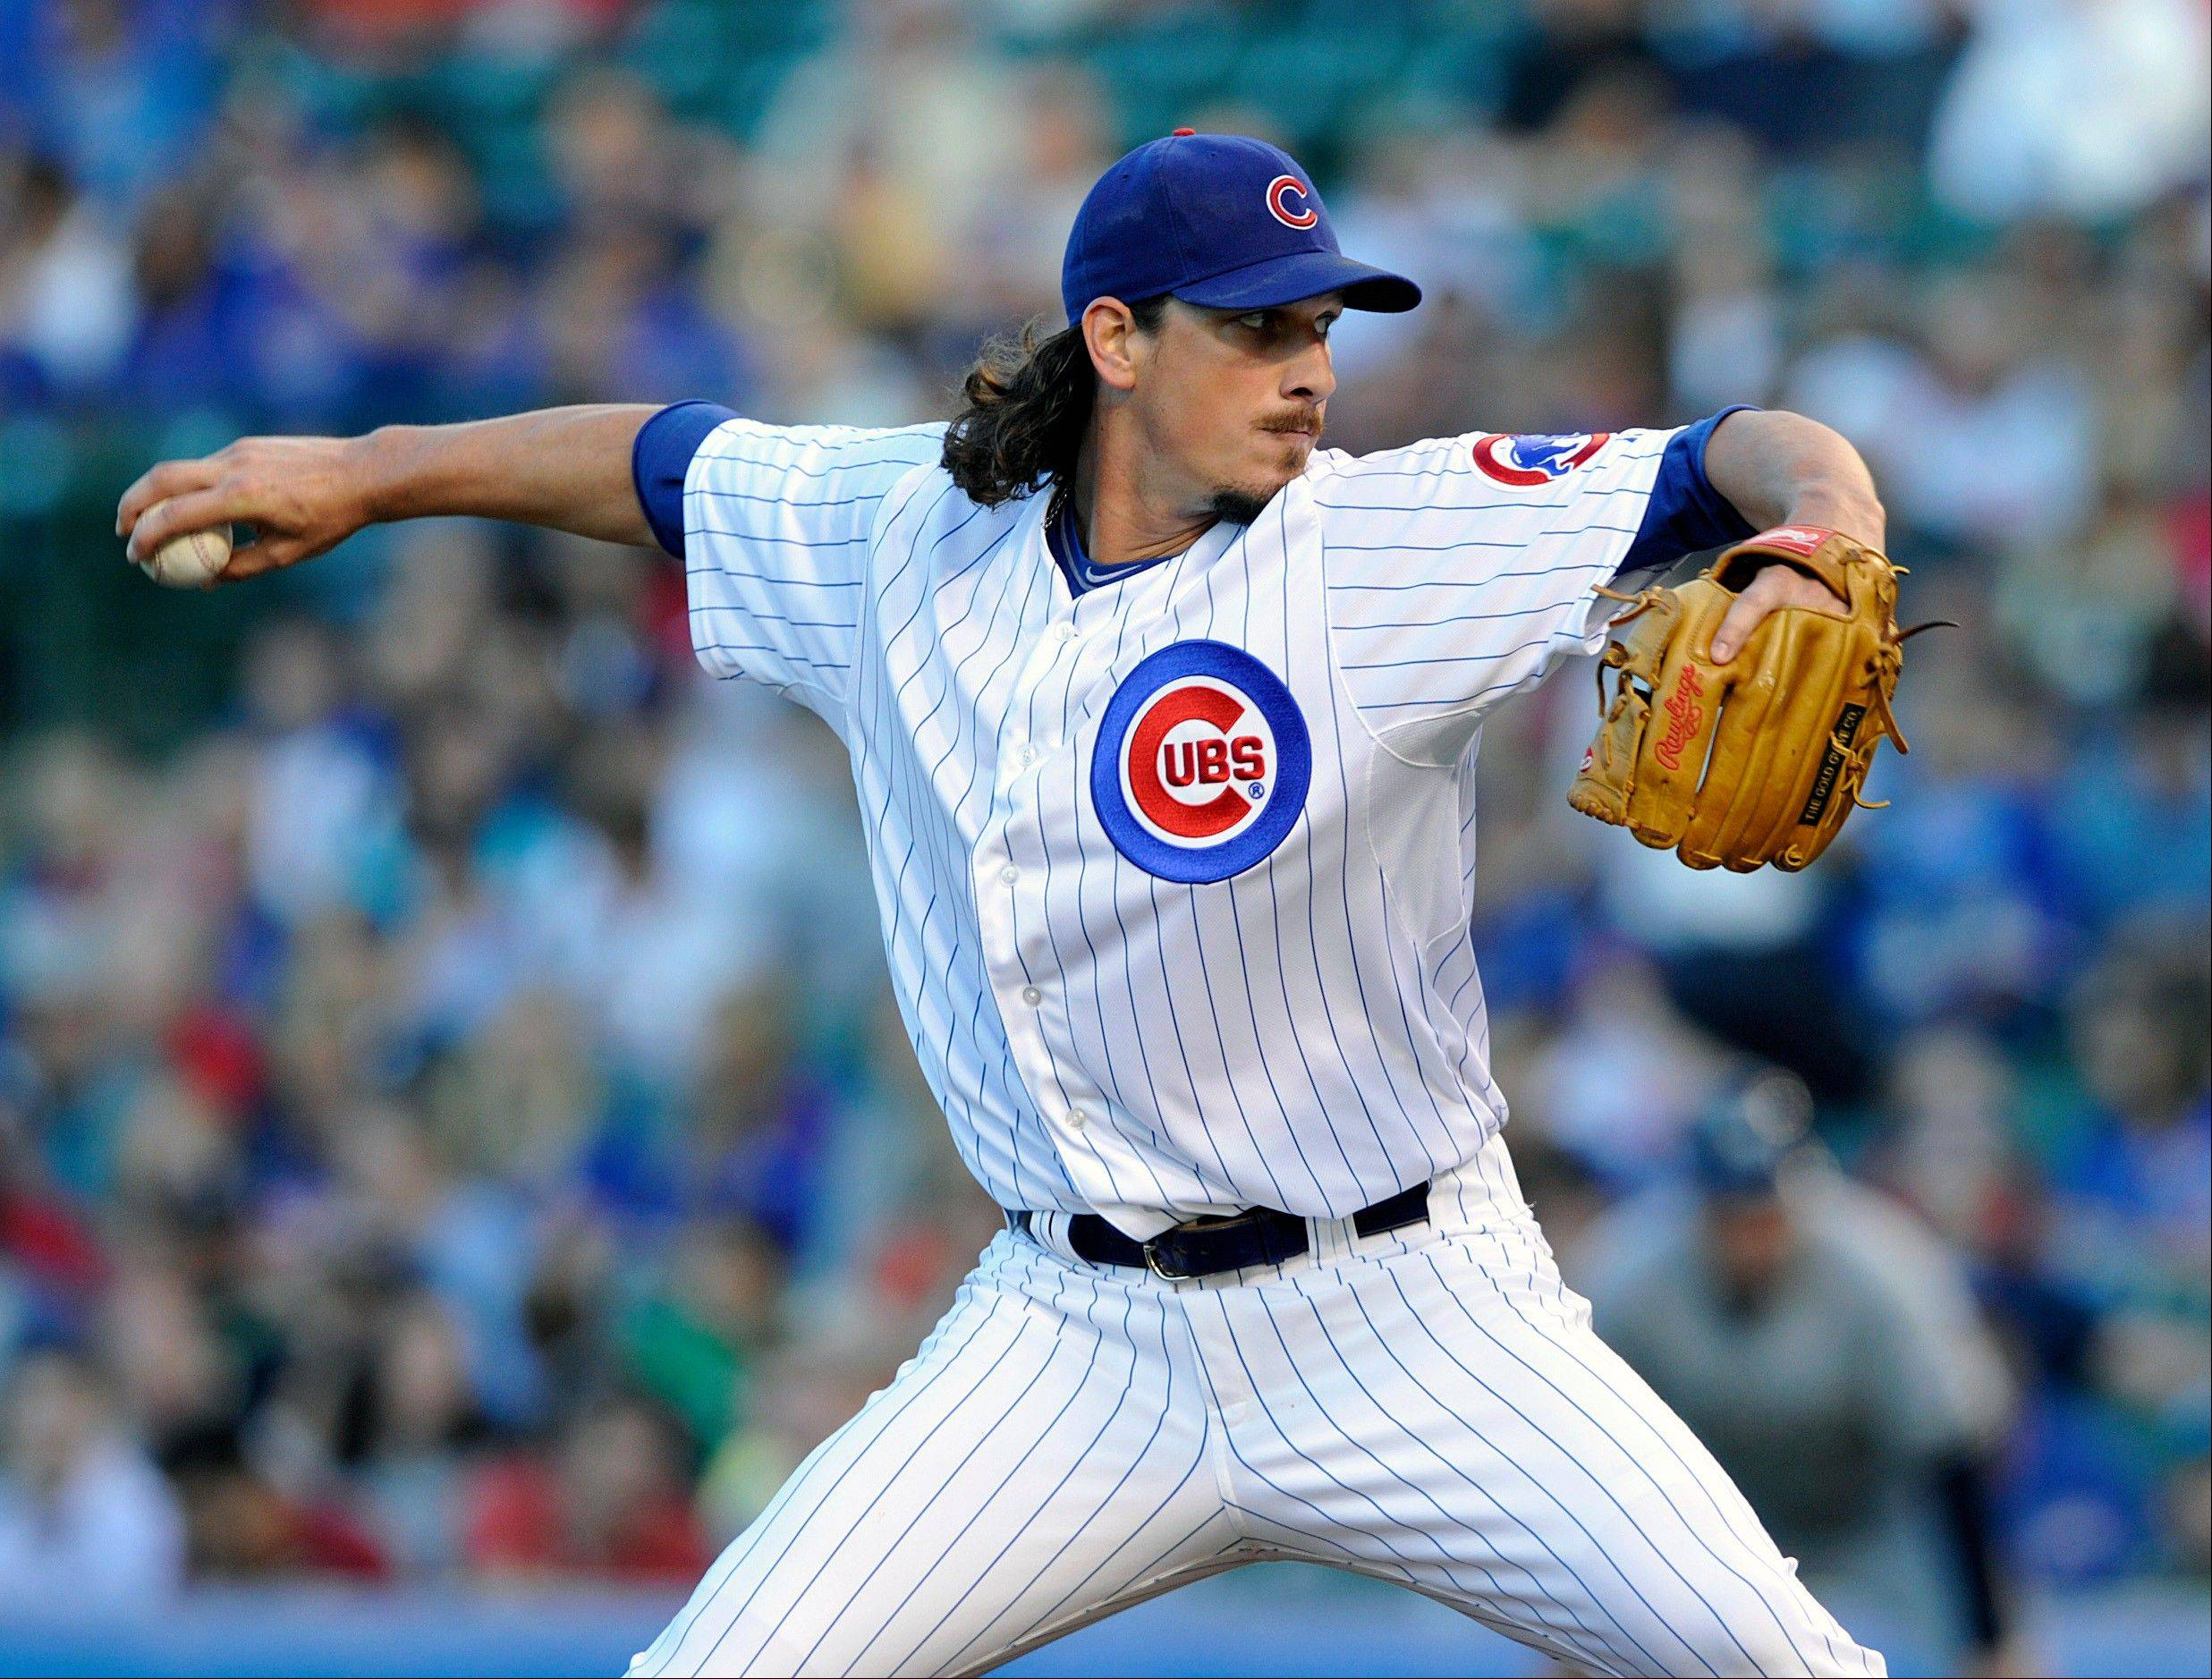 With his Chicago connections, starting pitcher Jeff Samardzija is an even better fit for the Cubs.